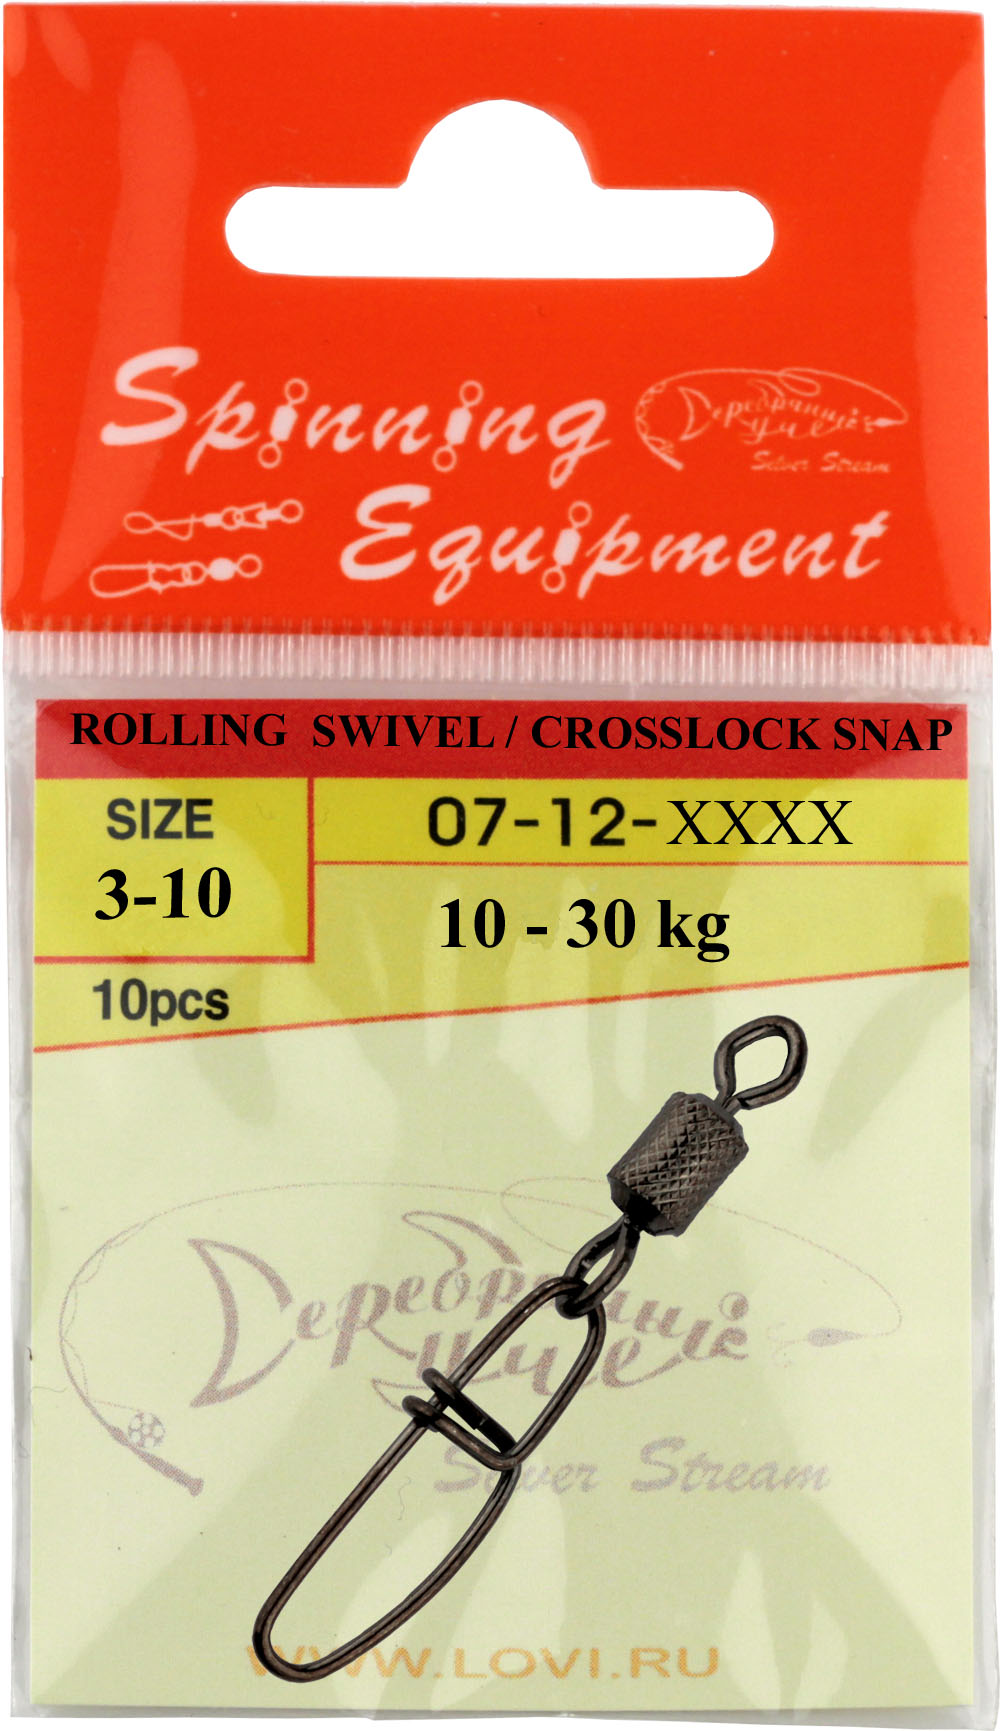 Вертлюжок с застёжкой ROLLING SWIVEL / CROSSLOCK SNAP-4 (10 шт)